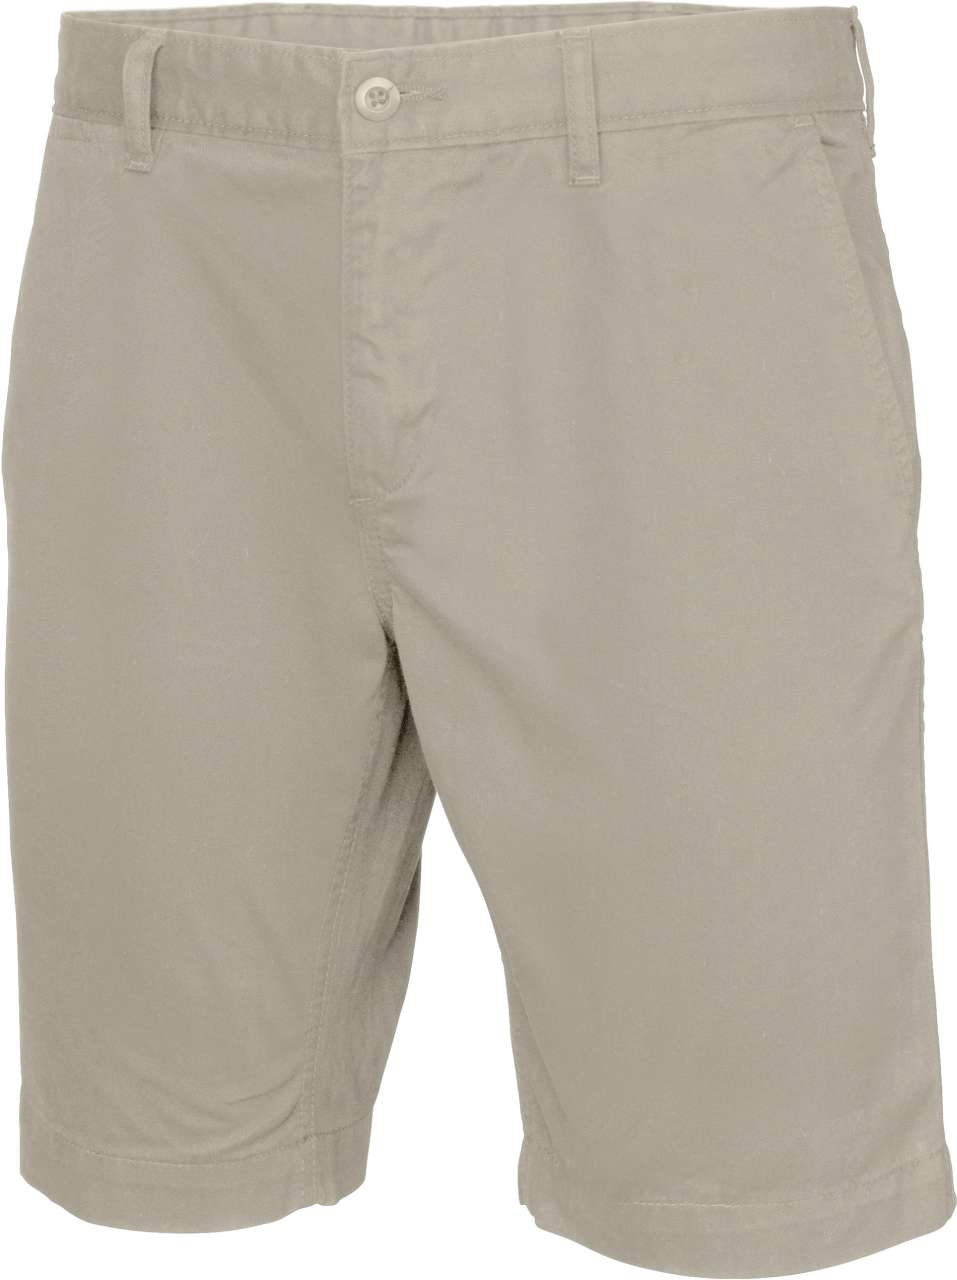 MEN'S CHINO BERMUDA SHORTS